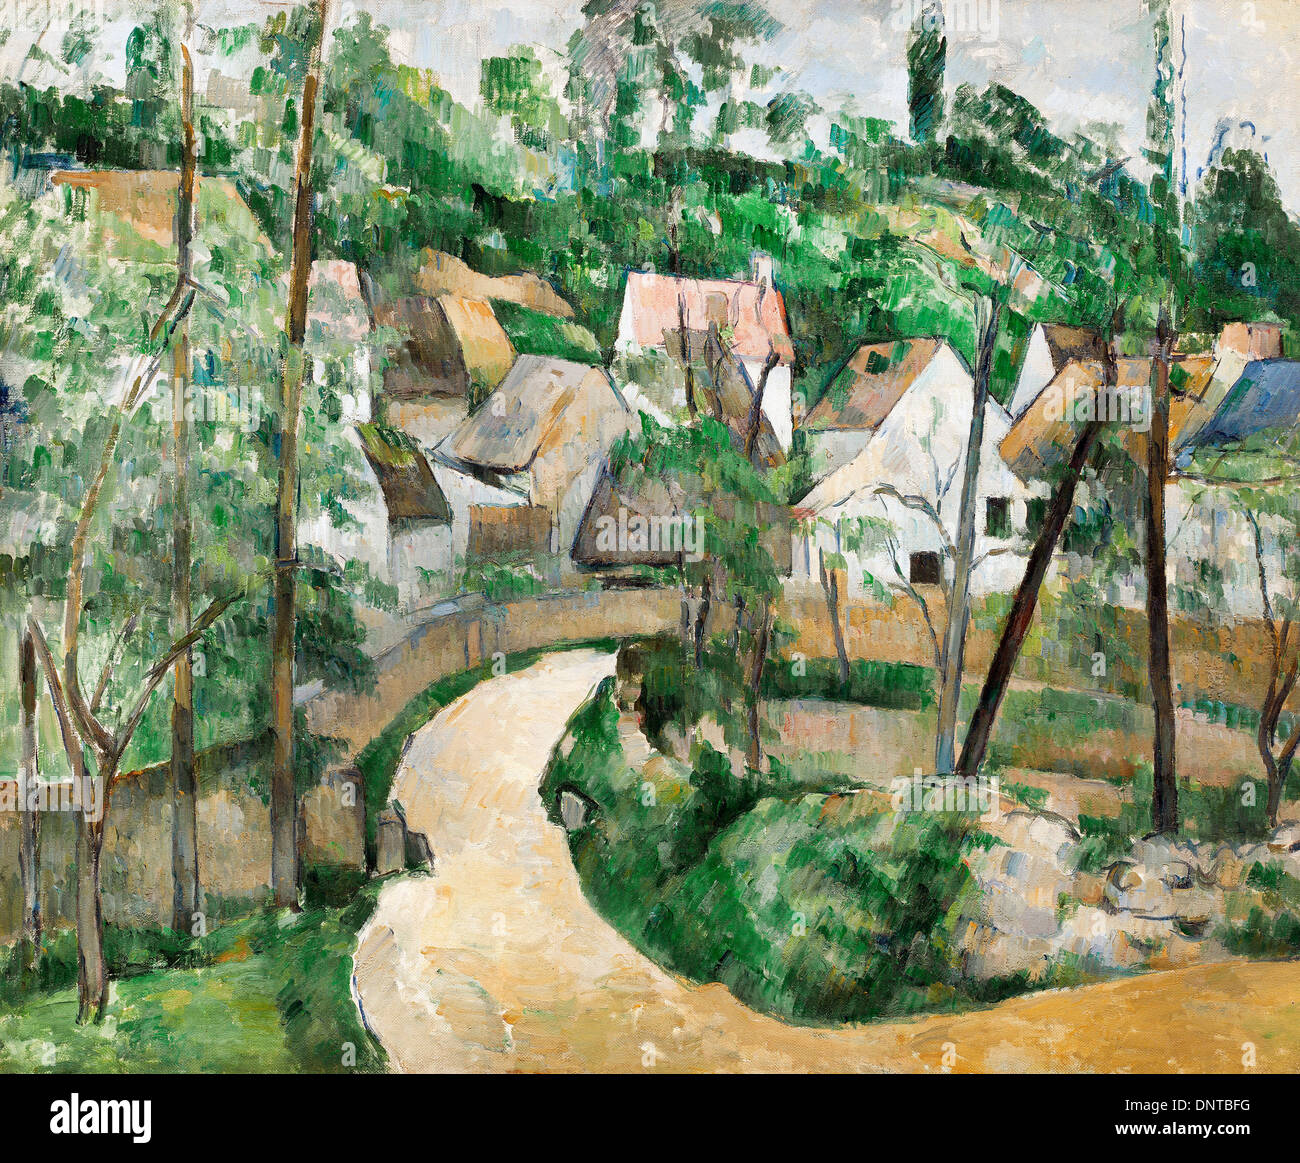 Paul Cezanne, Turn in the Road. Circa 1881. Oil on canvas. Museum of Fine Arts Boston, Boston, Massachusetts, USA. - Stock Image